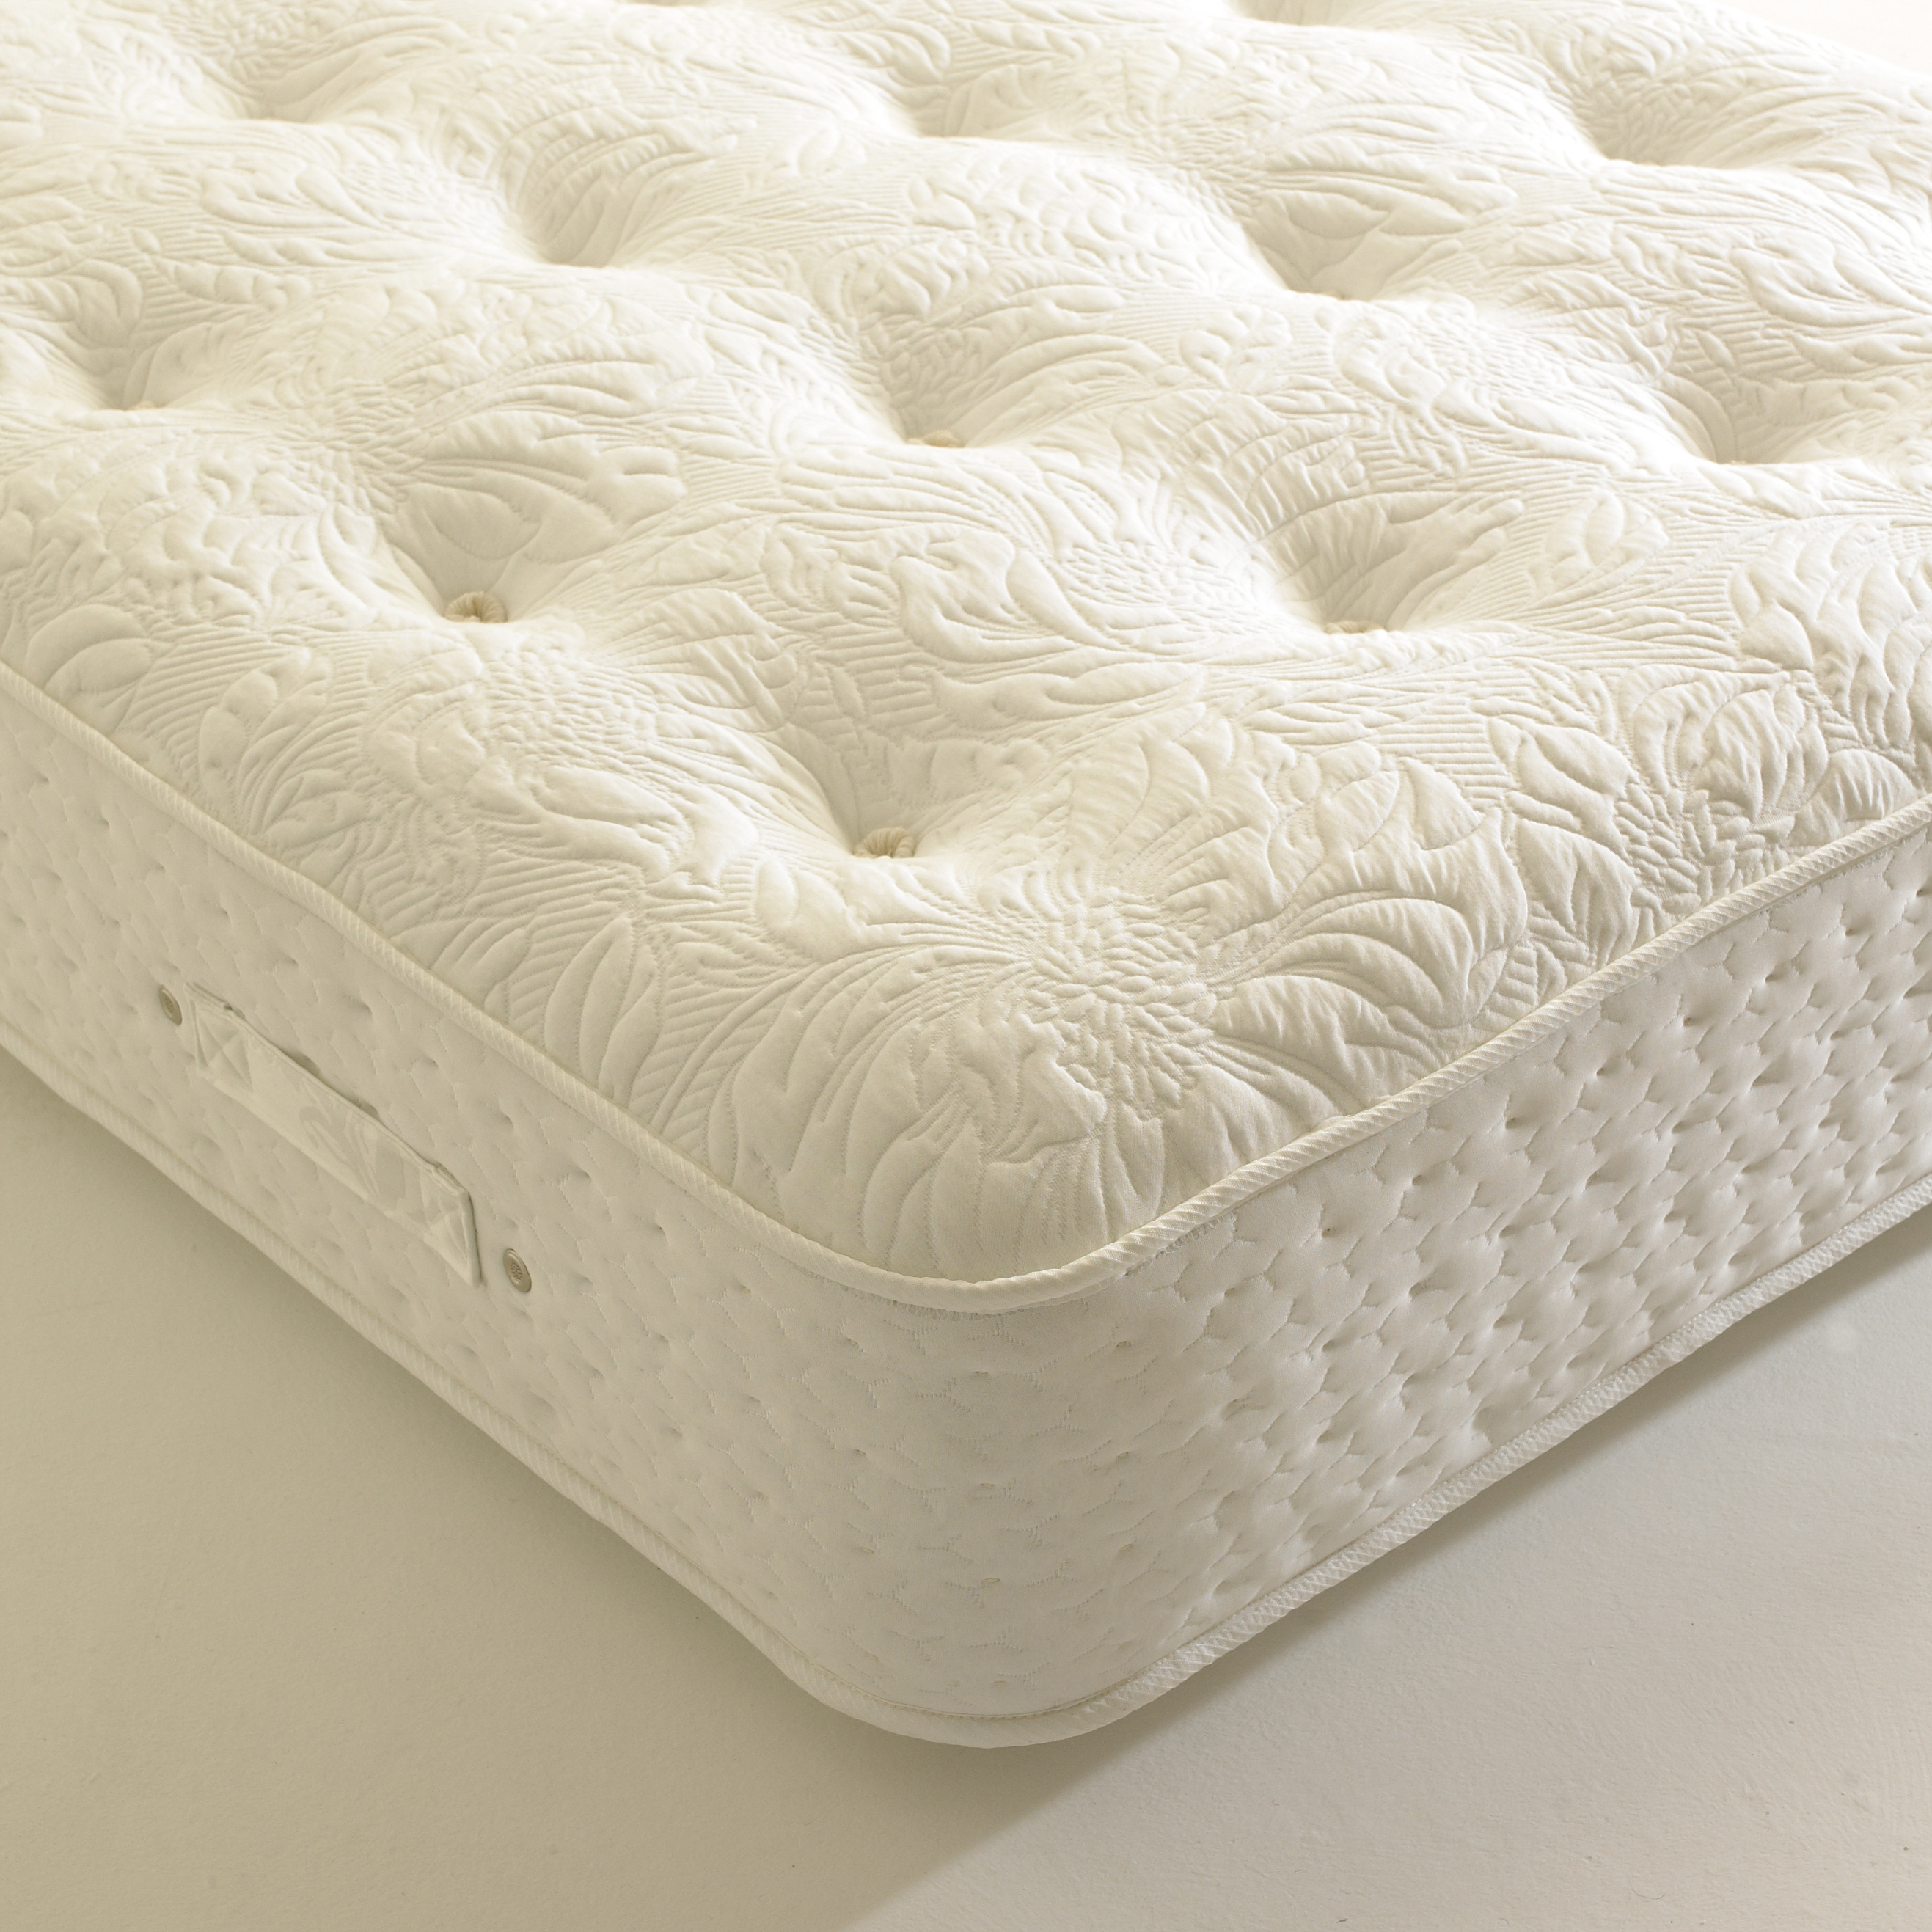 Shire Eco Sound Anti Bug 2000 Pocket Sprung Mattress from £299